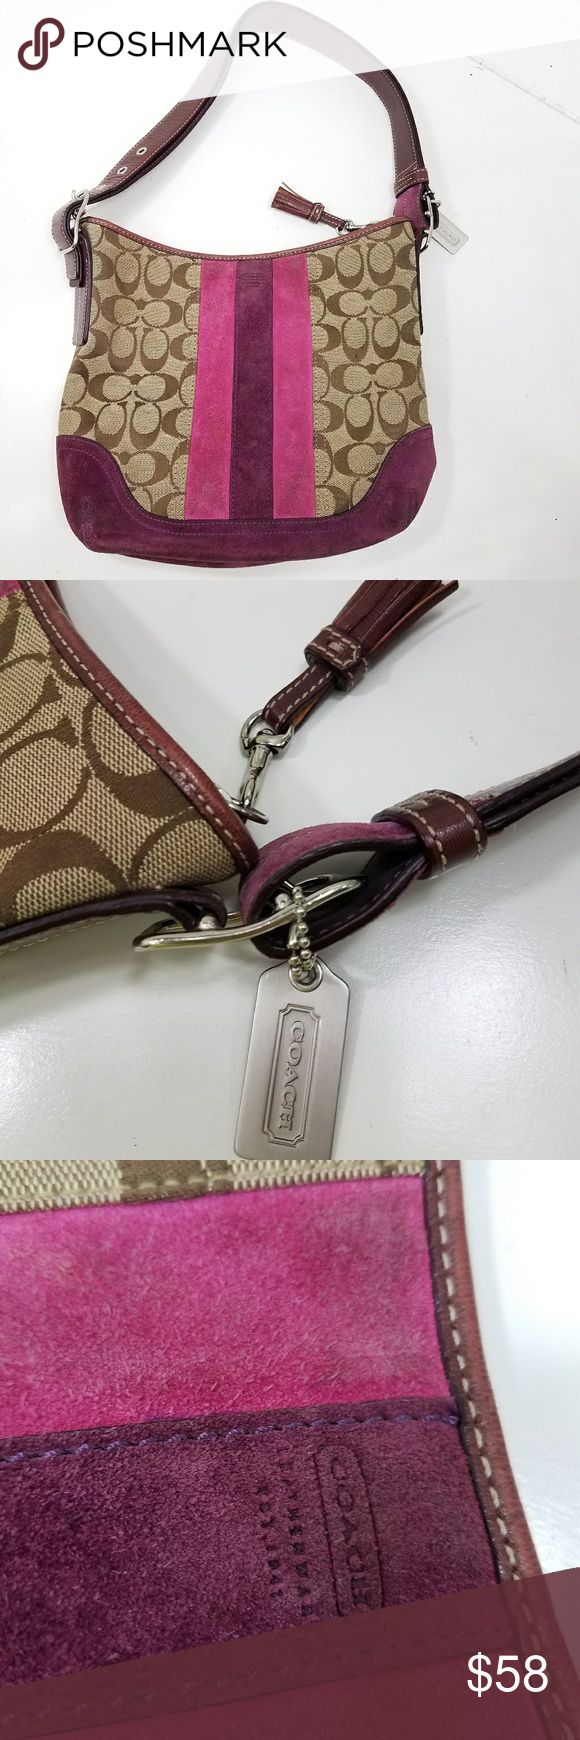 💘 COACH BAG W/ SUEDE 💘 8.5 across bottom 11 inches wide 9 height 10 from top of strap to top of bag  Good condition. Some wear on bottom corners, see photos   *BUNDLE &save with our DISCOUNT* Coach Bags